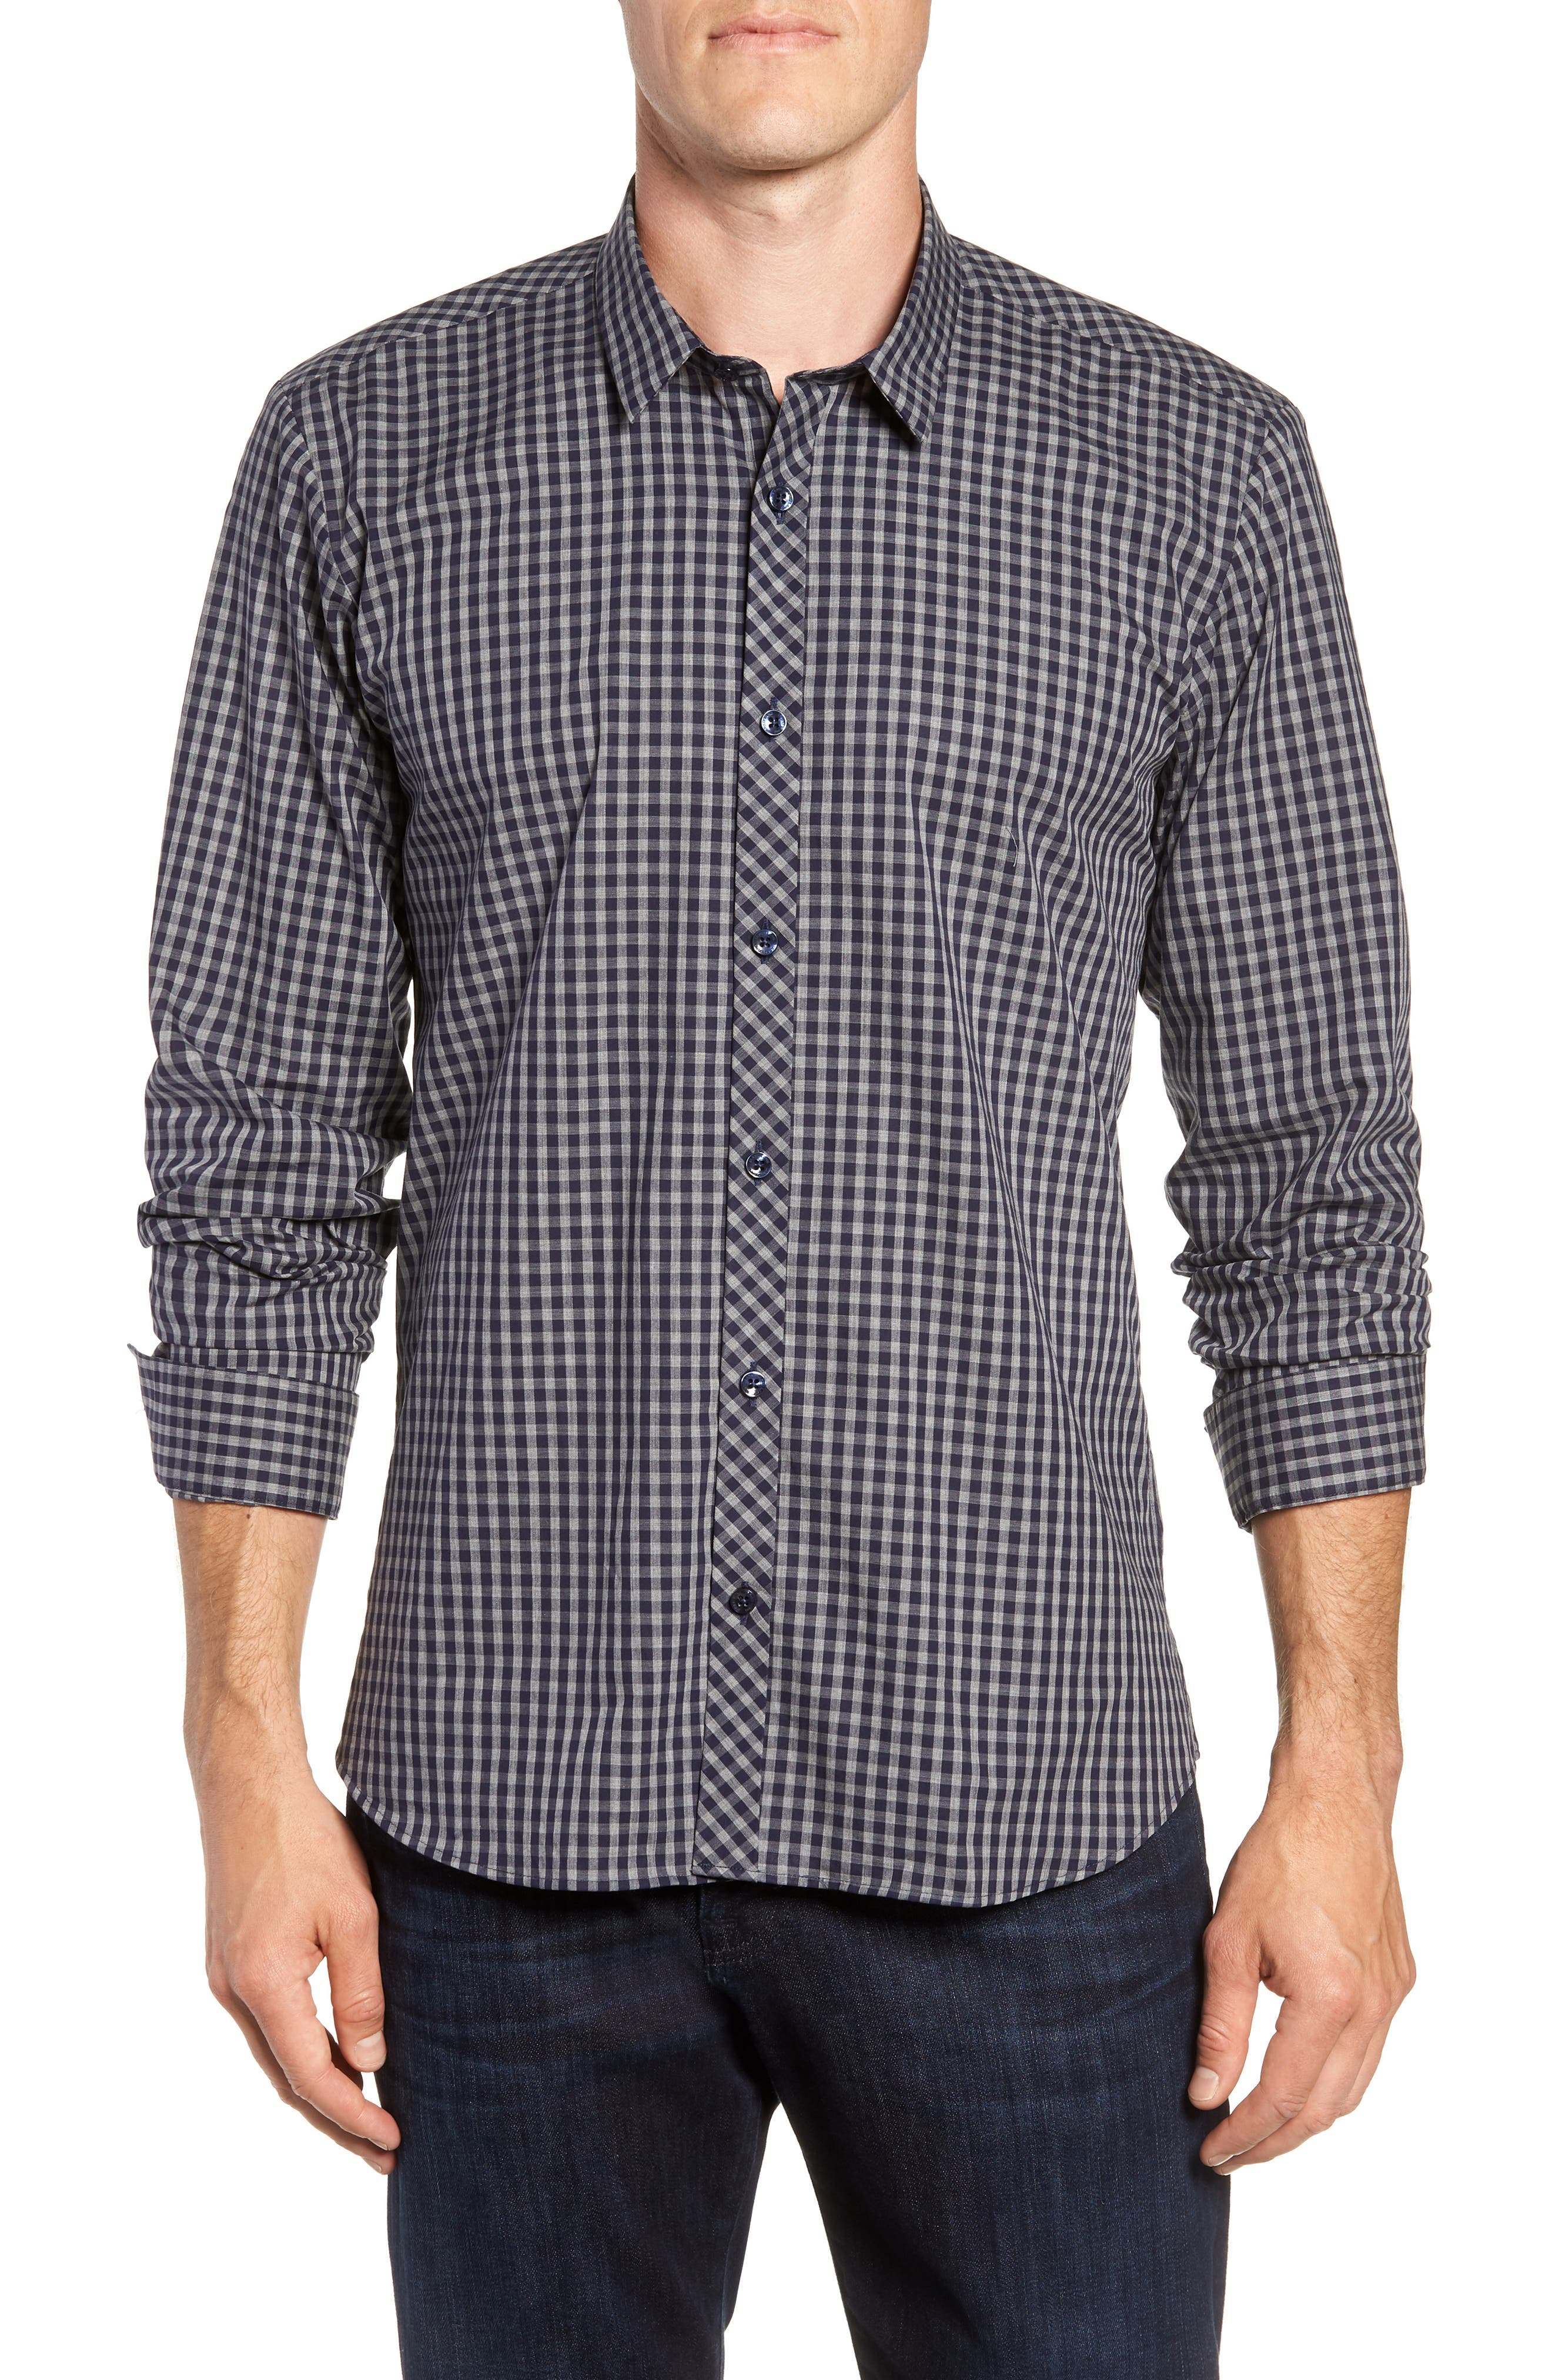 Trim Fit Sport Shirt,                             Main thumbnail 1, color,                             Navy Grey Check